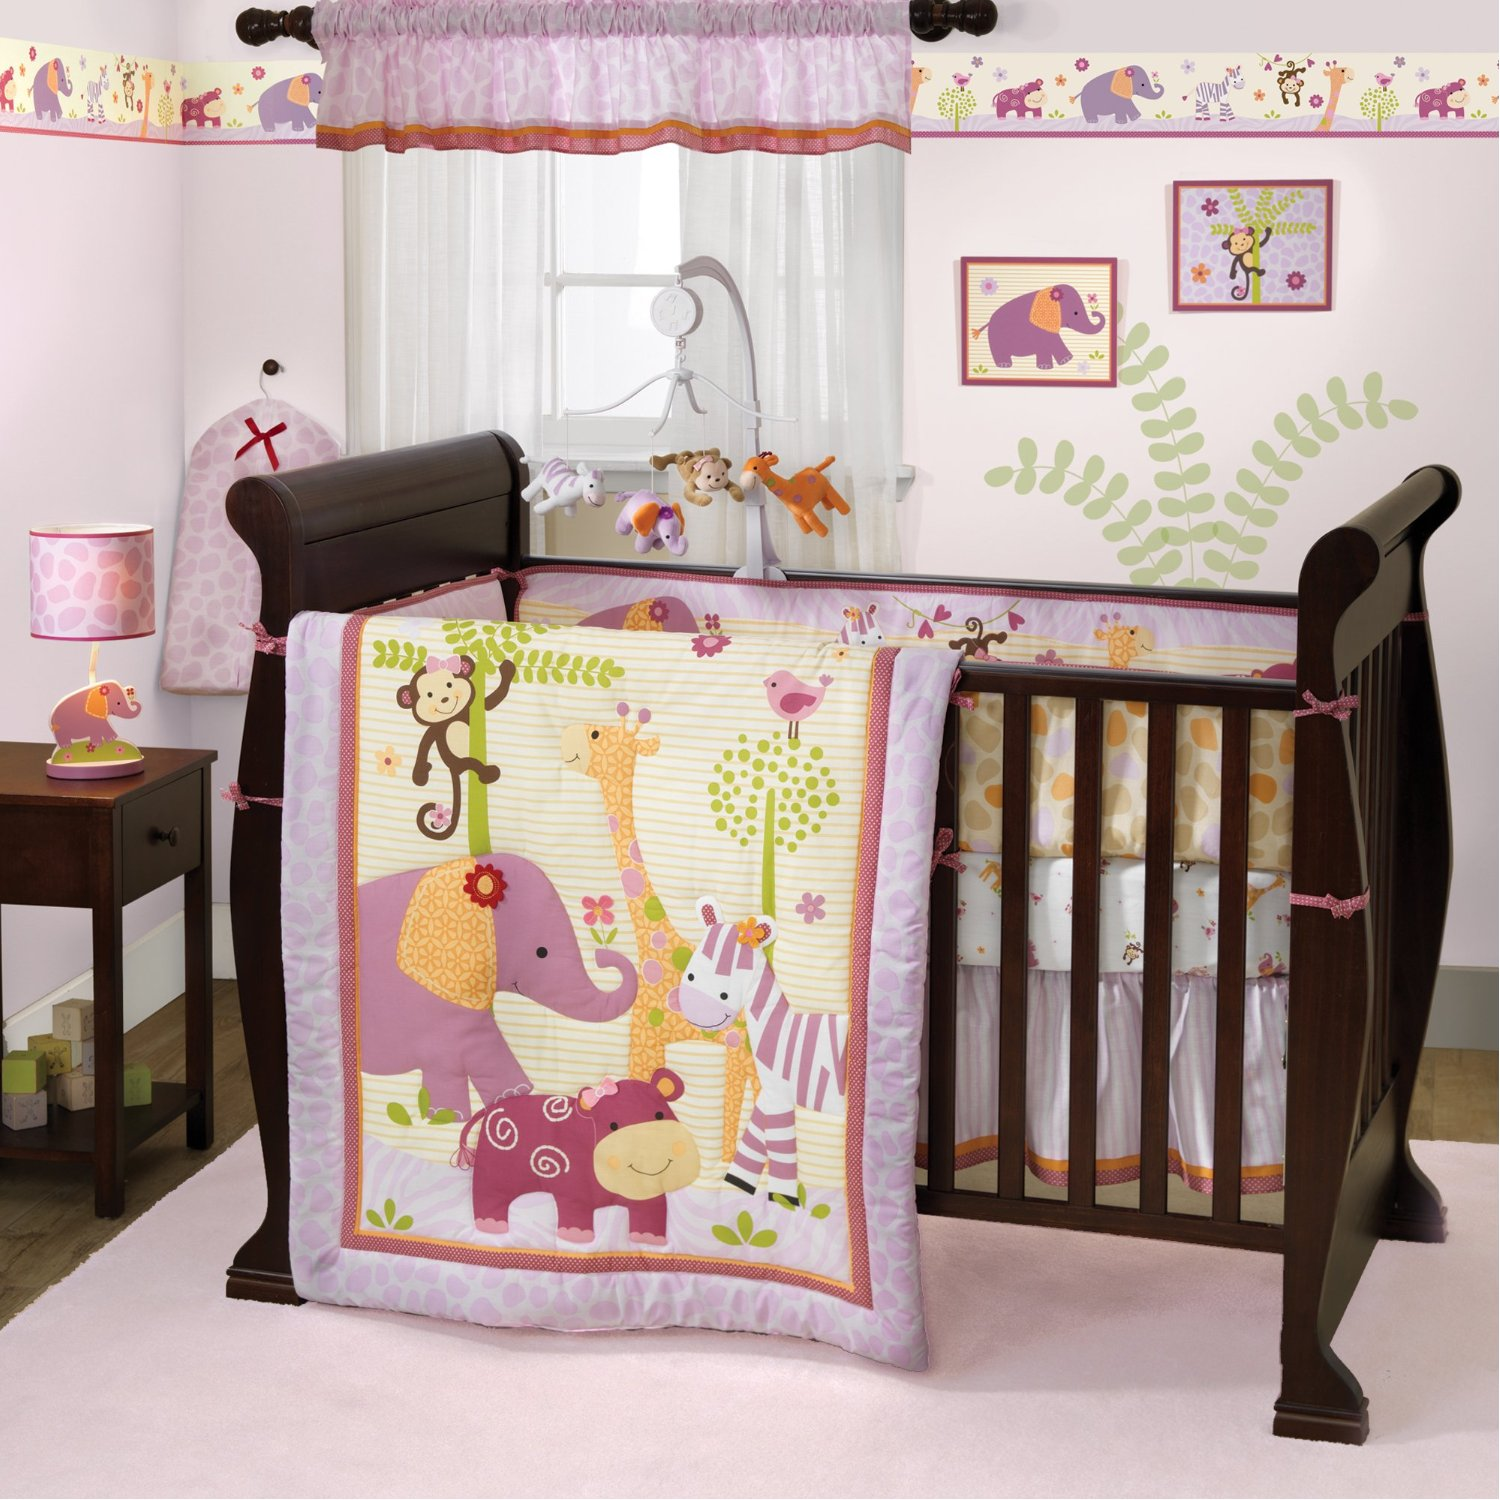 Nursery Room Ideas Animal Nursery Theme Series 1